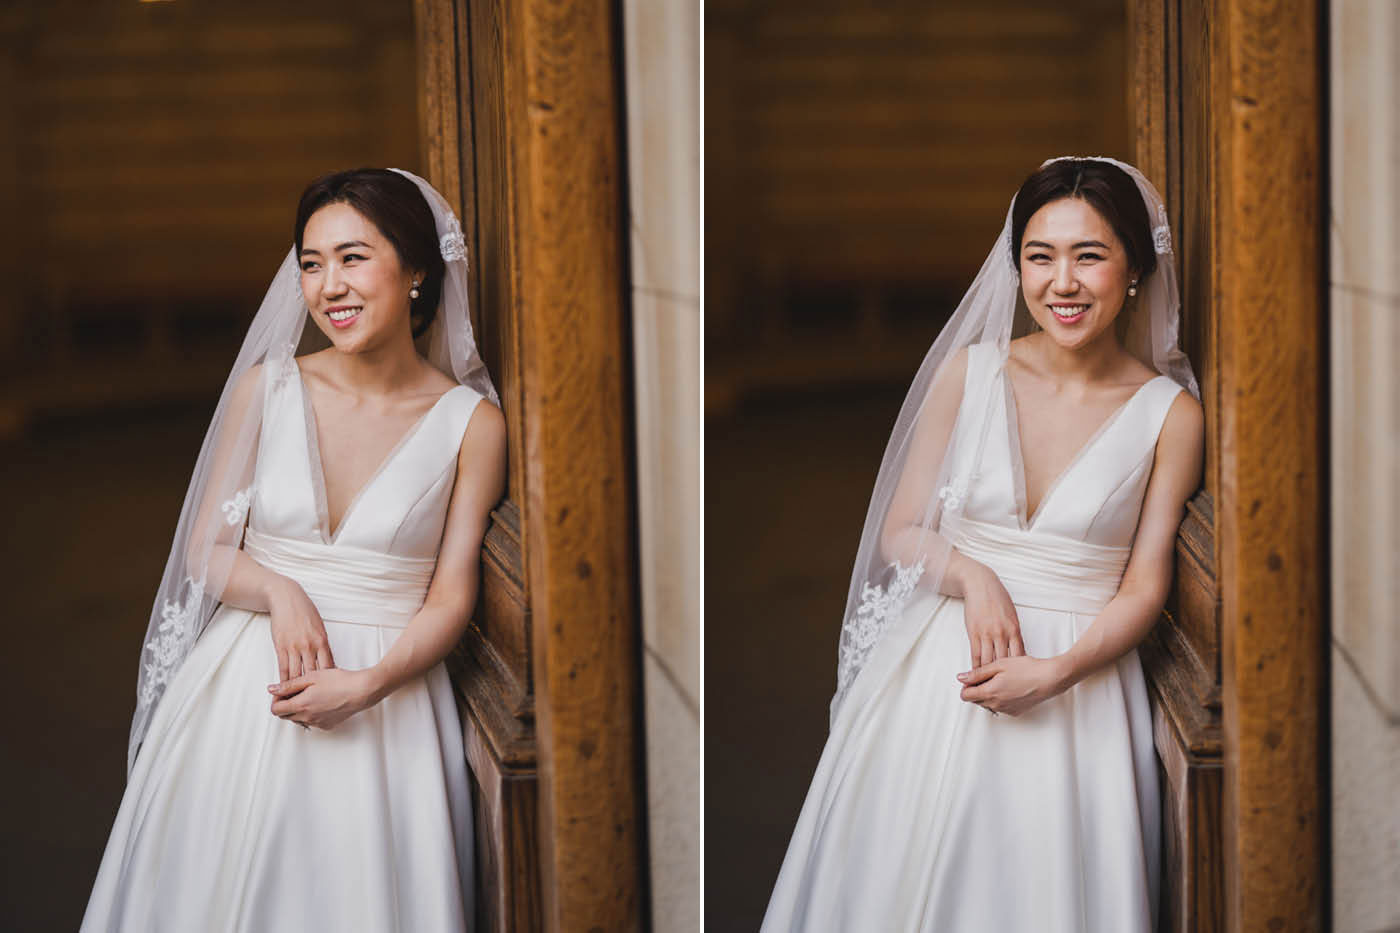 bride portraits at the James Burden Kahn Mansion by Weddings by Hanel